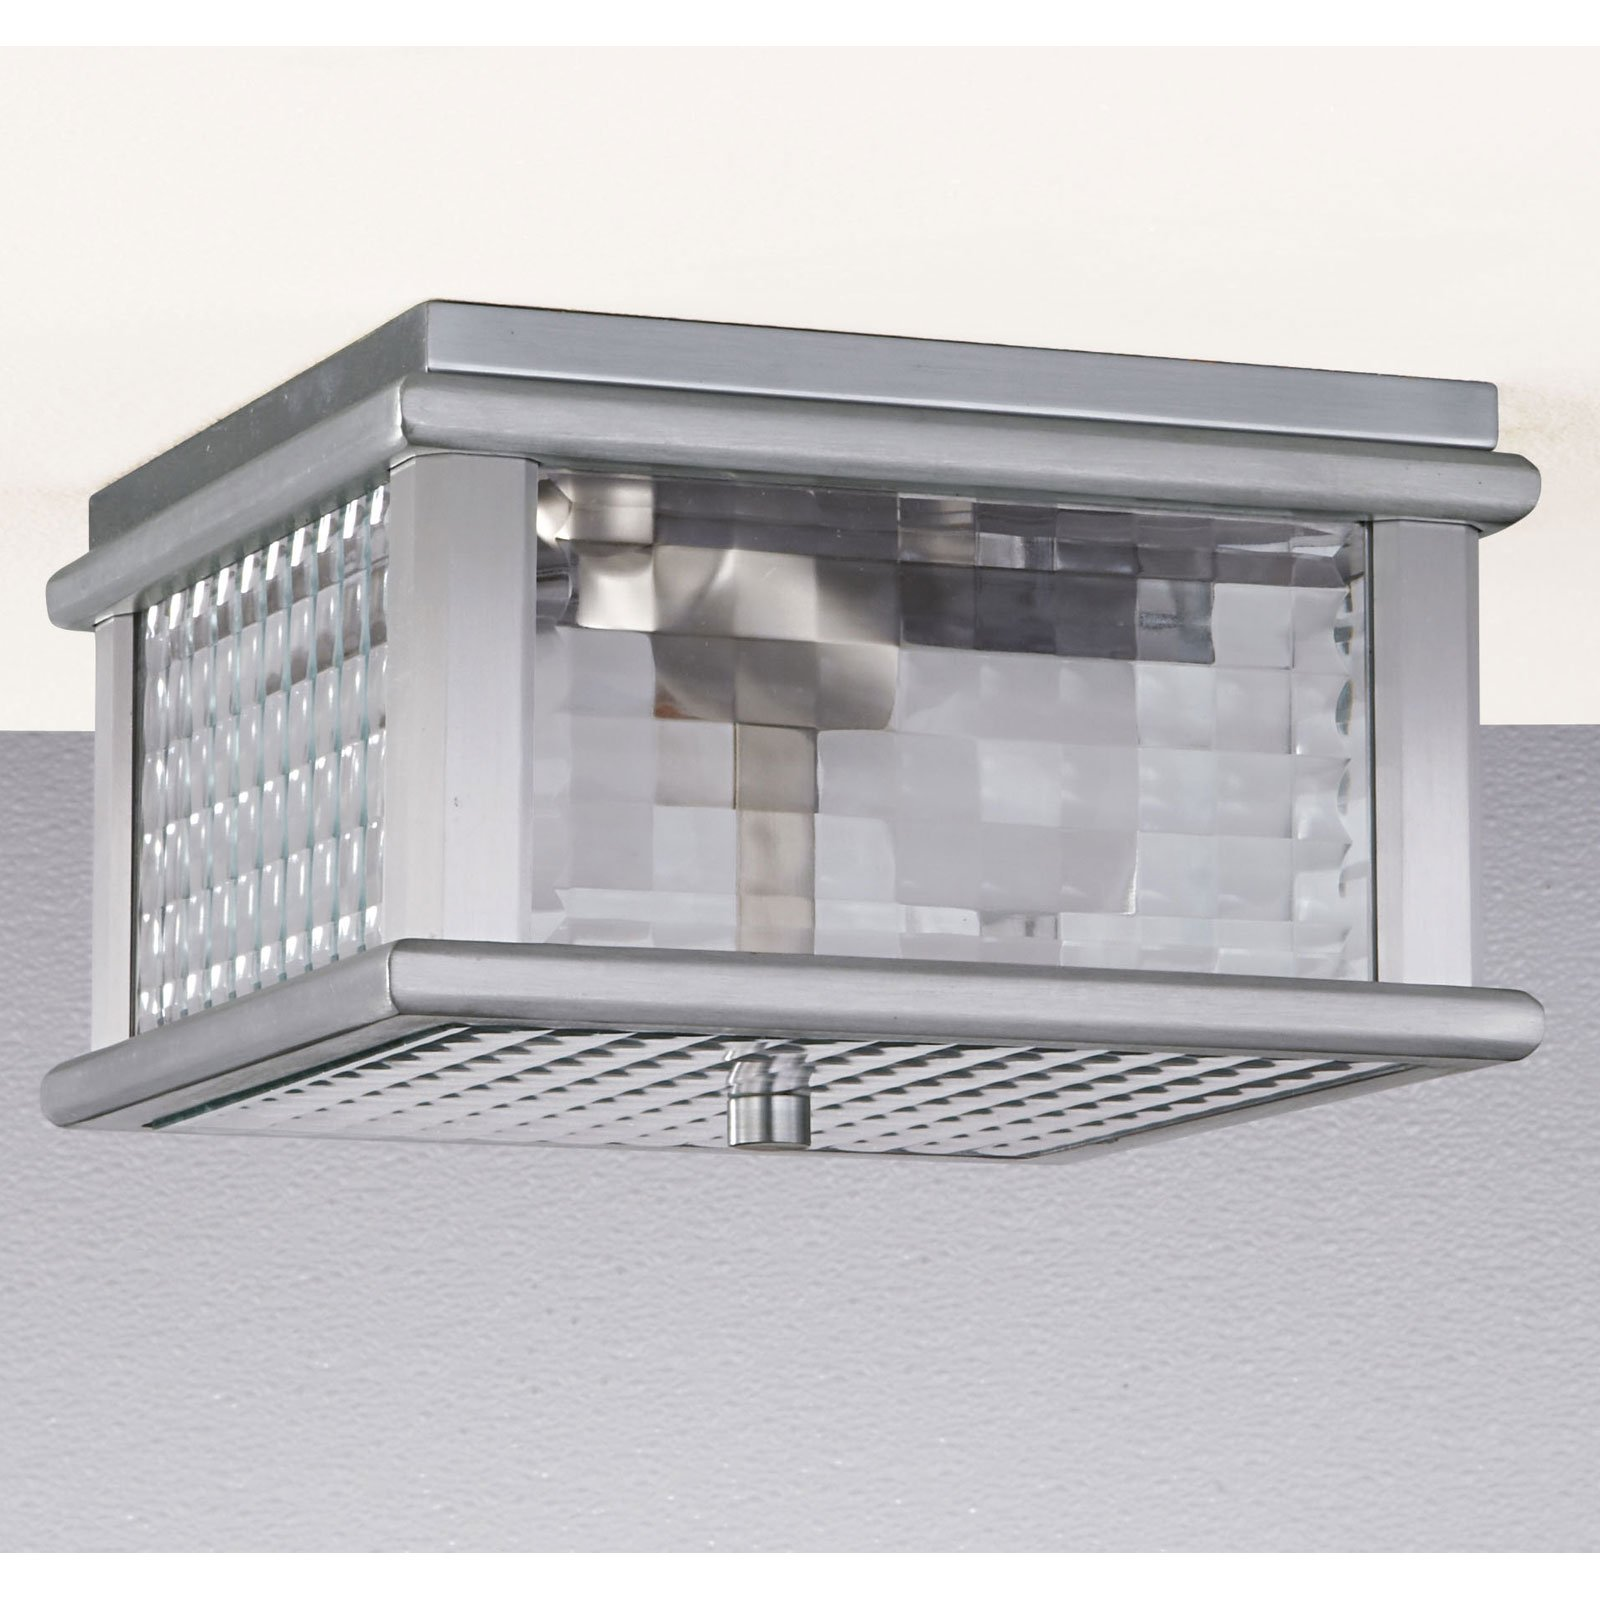 Feiss Monterey Coast Outdoor Ceiling Light - 5.5H in. Brushed Aluminum